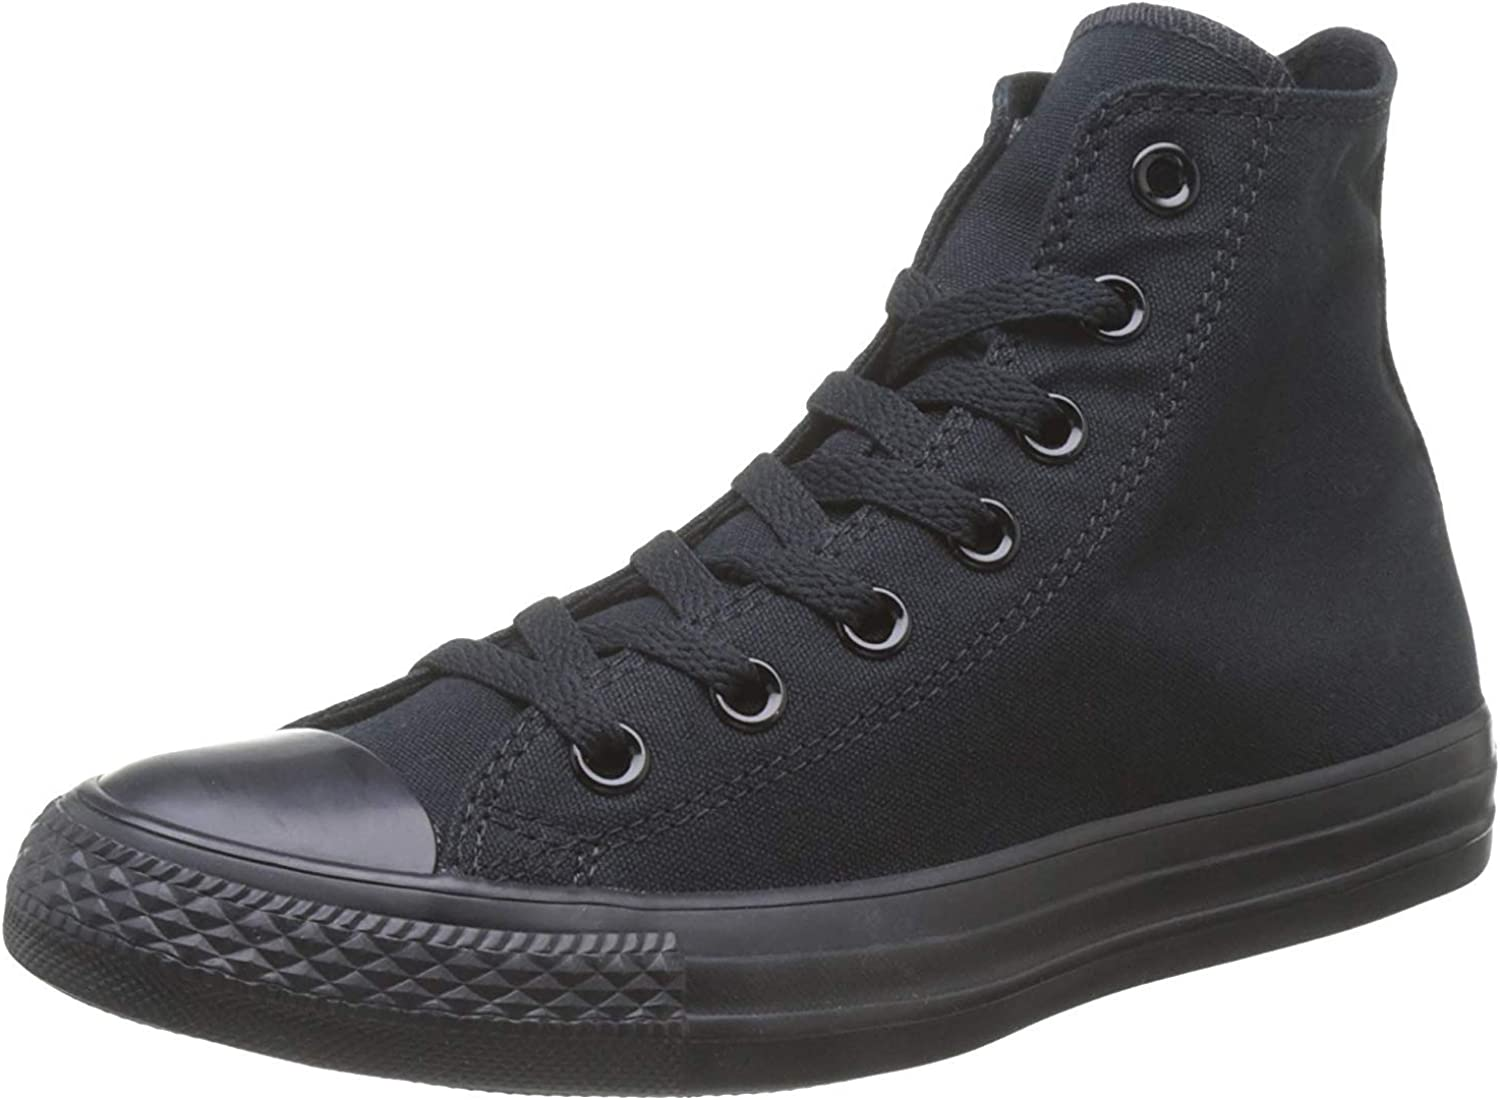 B0000DD9PW Converse Men's Chuck Taylor All Star Core Hi 61hfxnWjz3L